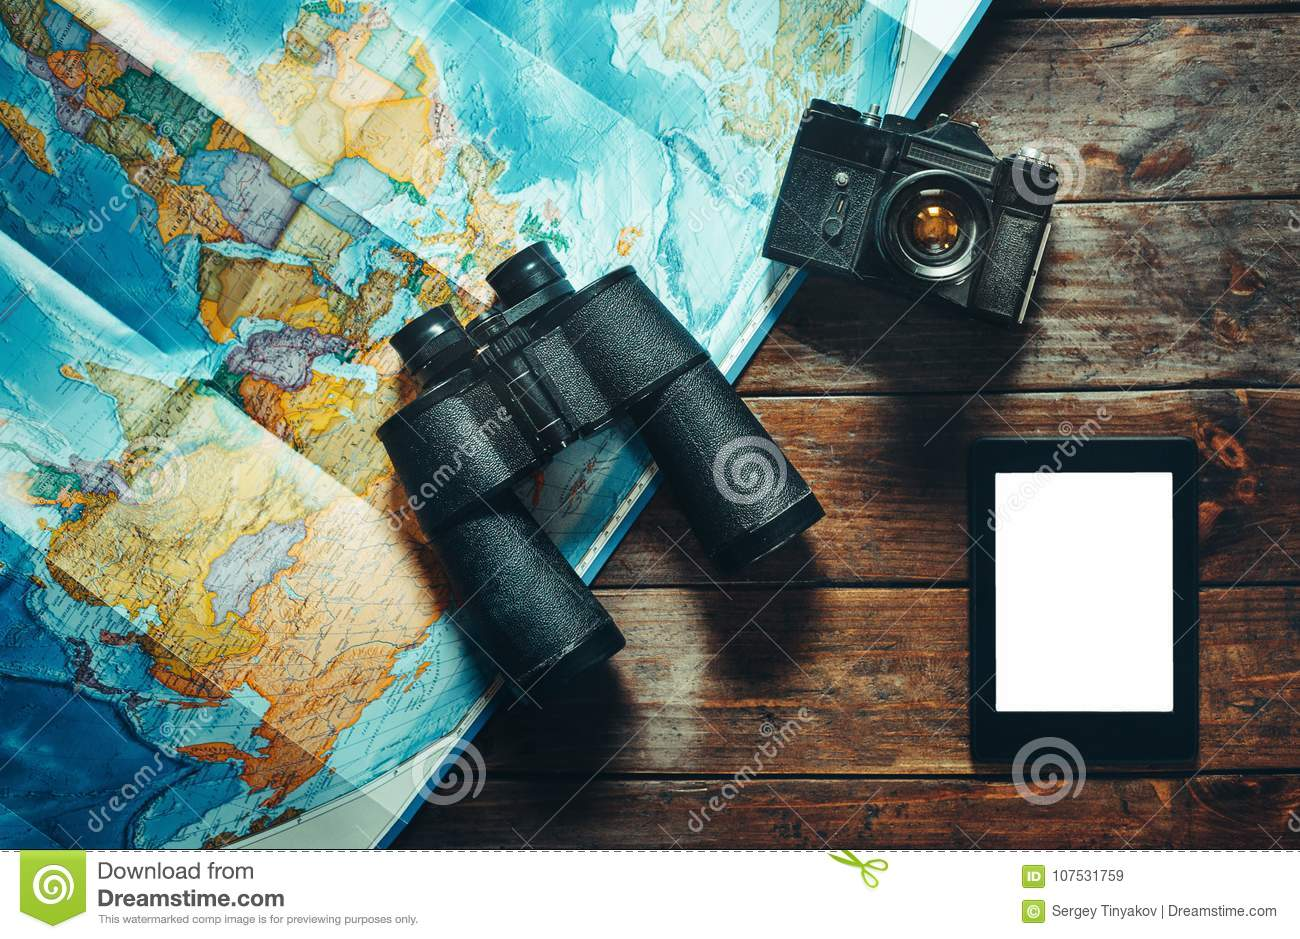 Vintage Film Camera, Map, Tablet And Binoculars On Wooden Table, Top View. Adventure Travel Scout Journey Concept